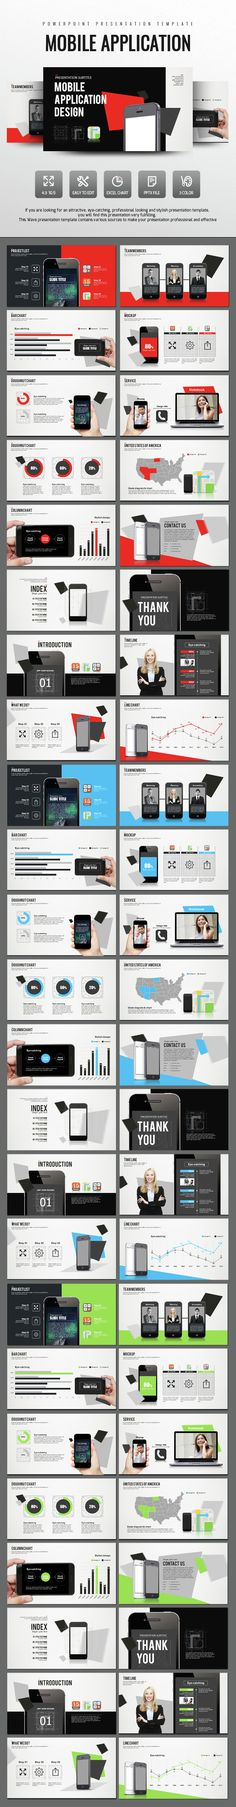 Mobile Application Design PowerPoint (PowerPoint Templates)